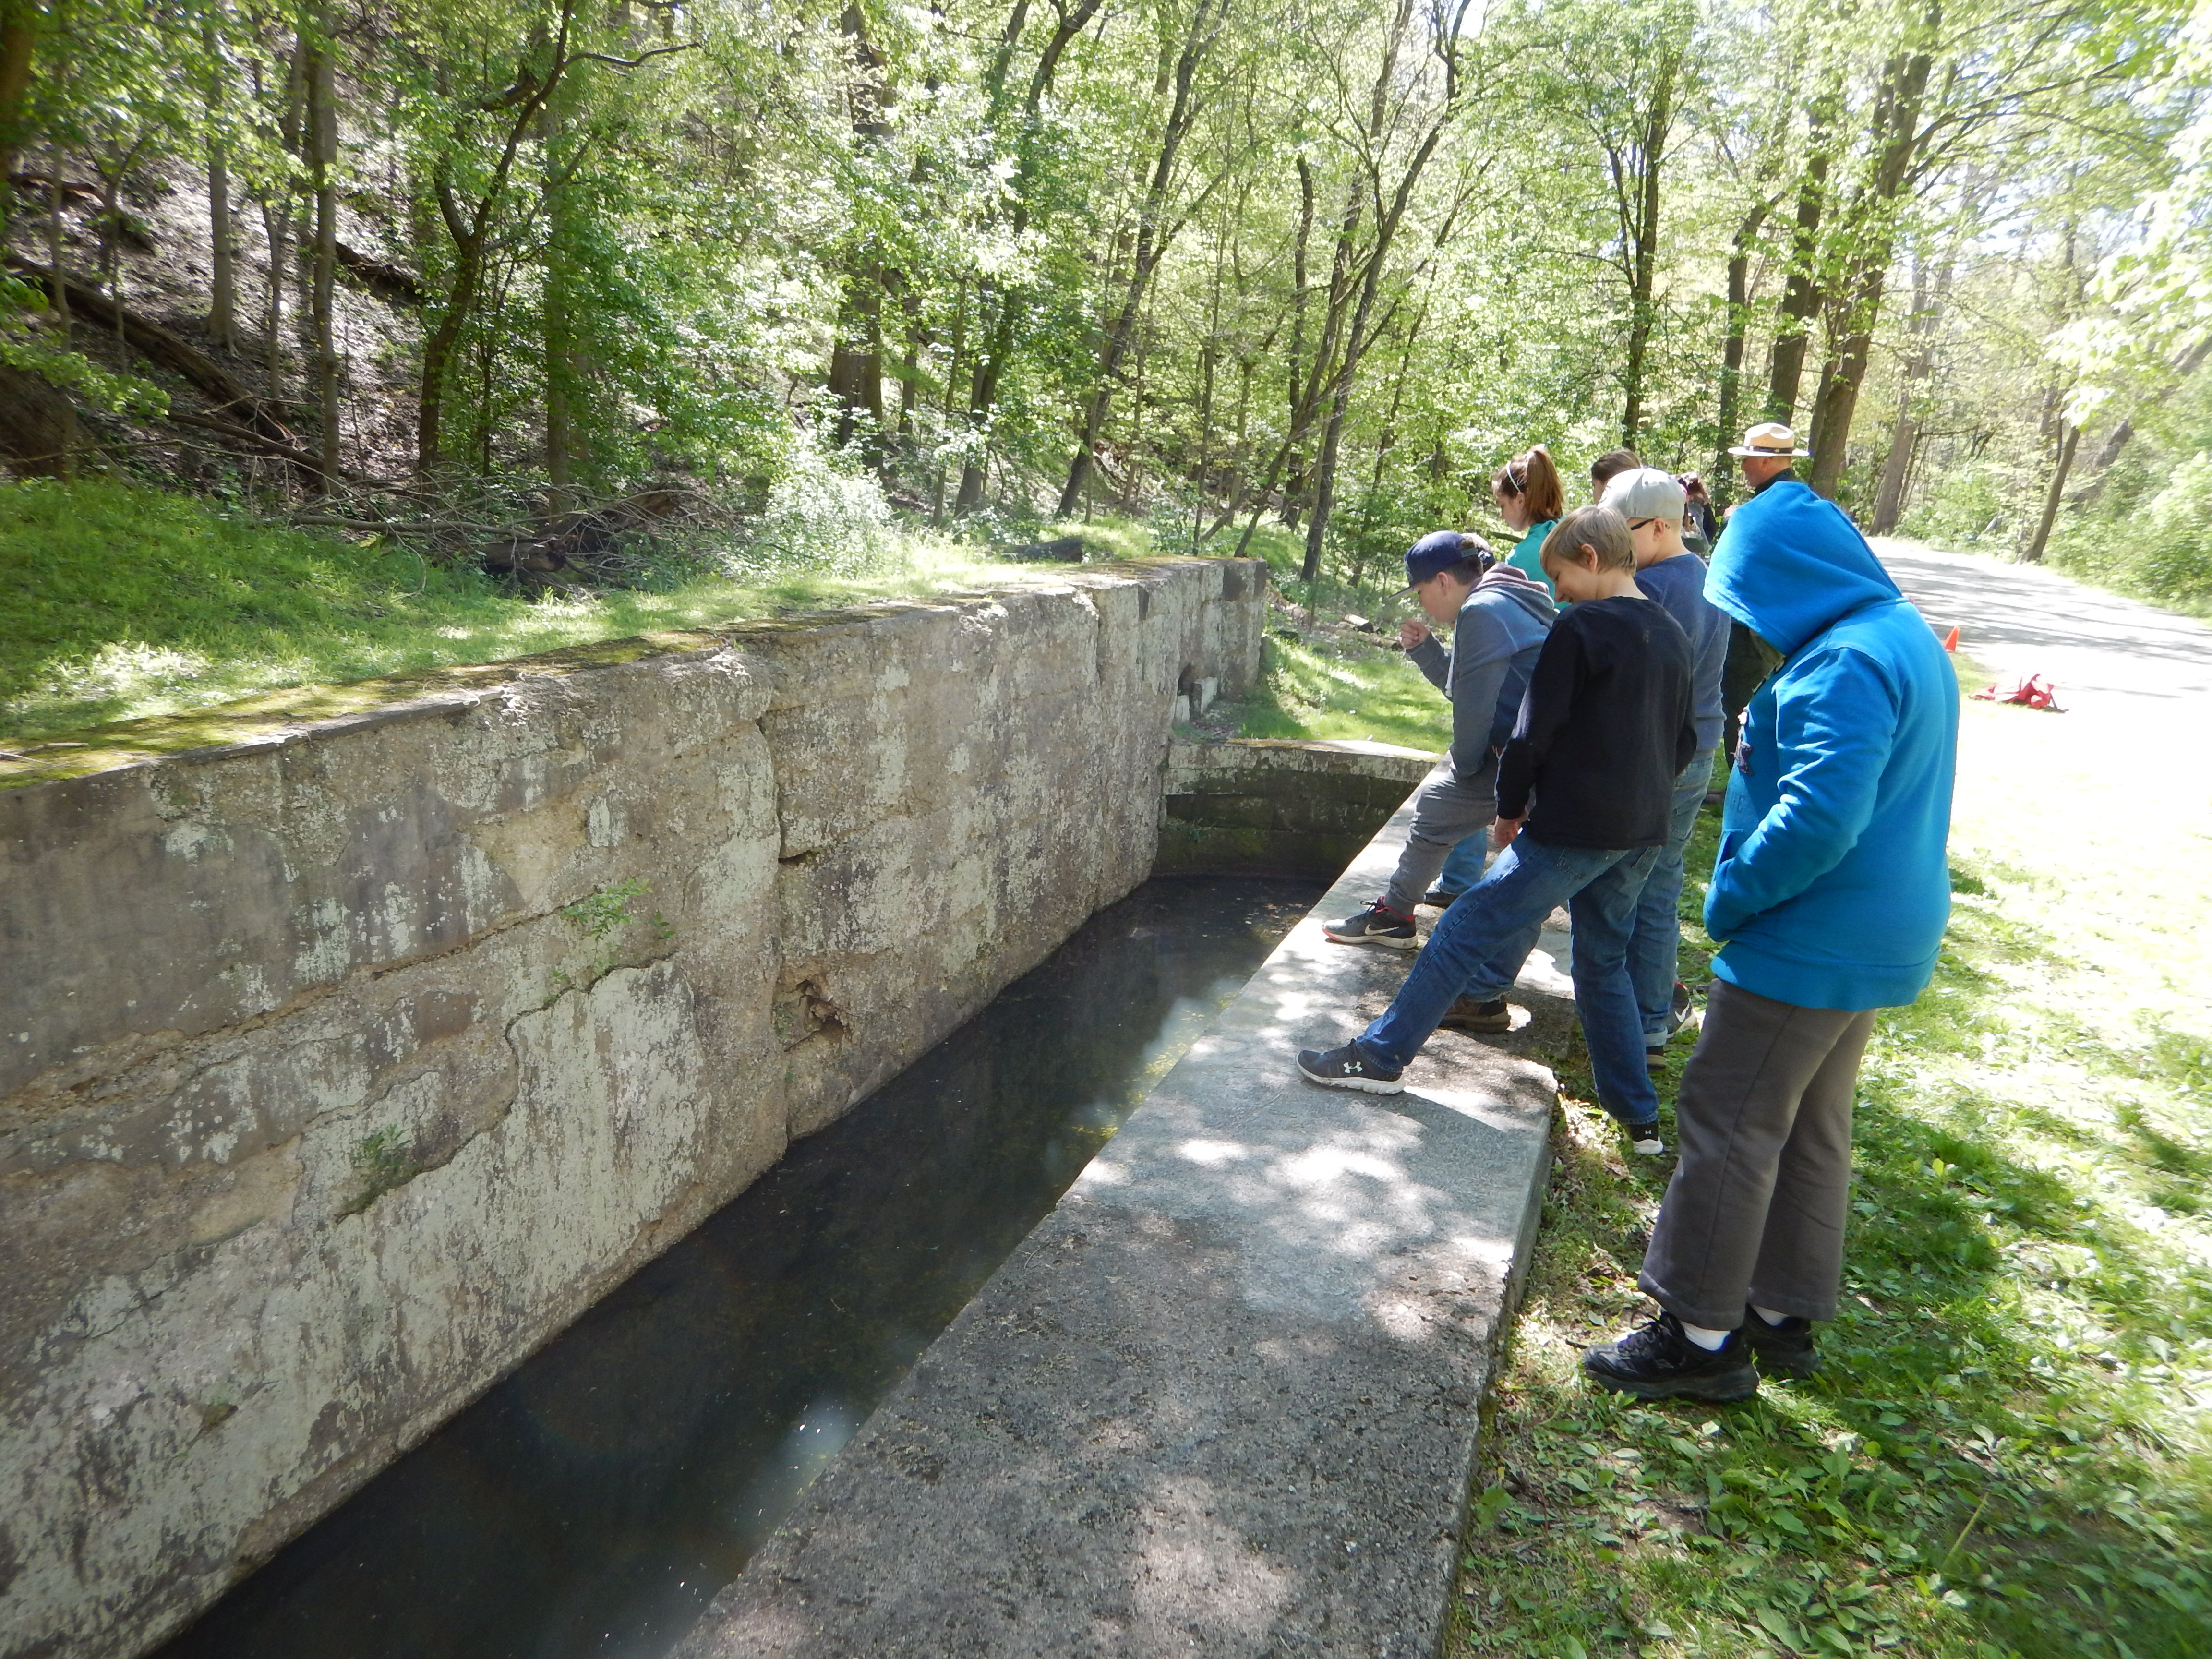 At the national park students worked in teams to cut invasive plants, learned about the importance of good water quality in the Cuyahoga River, and learned about the Erie Canal.